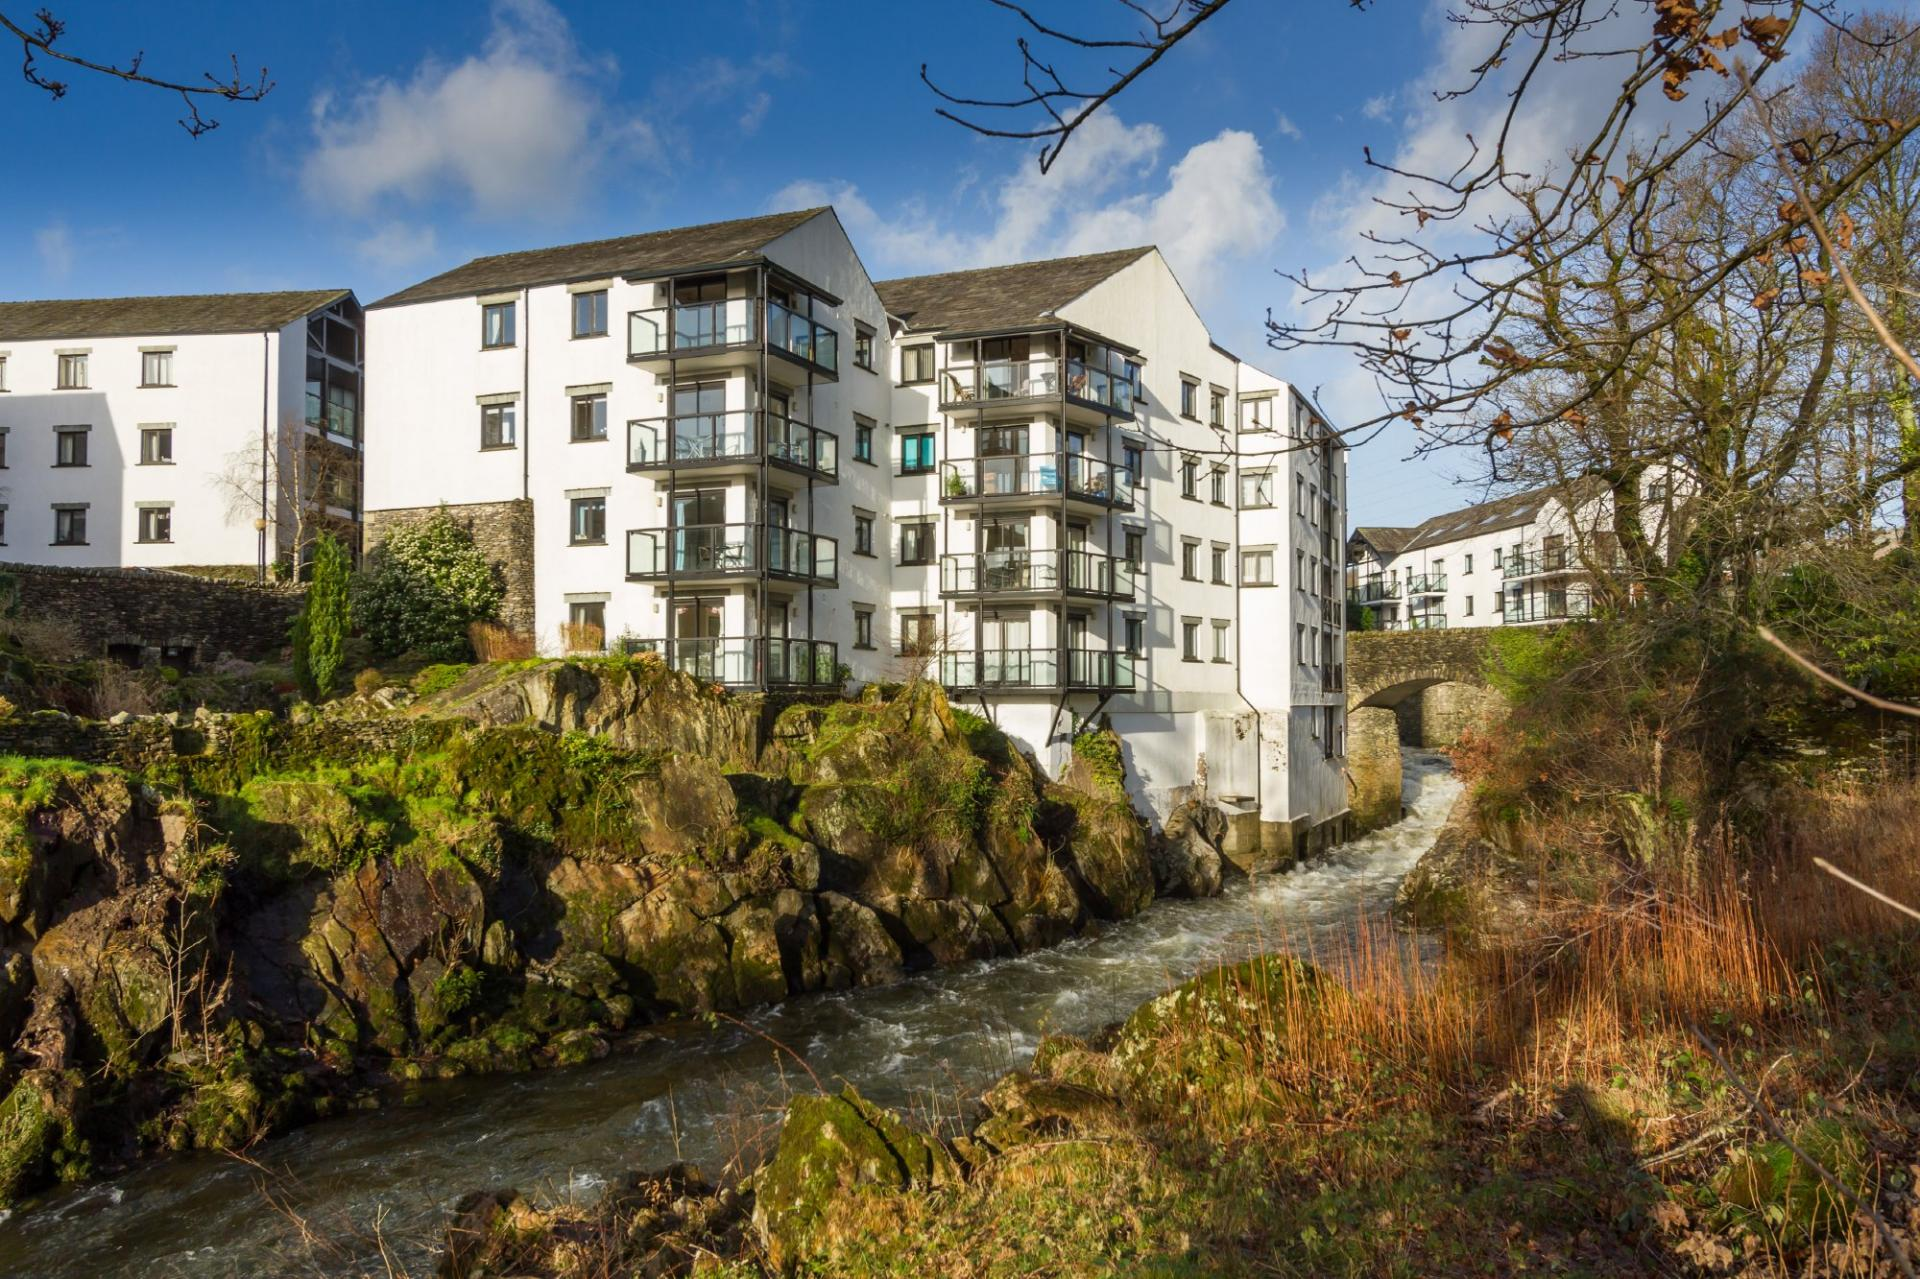 3 bedroom Apartment for sale in Kendal